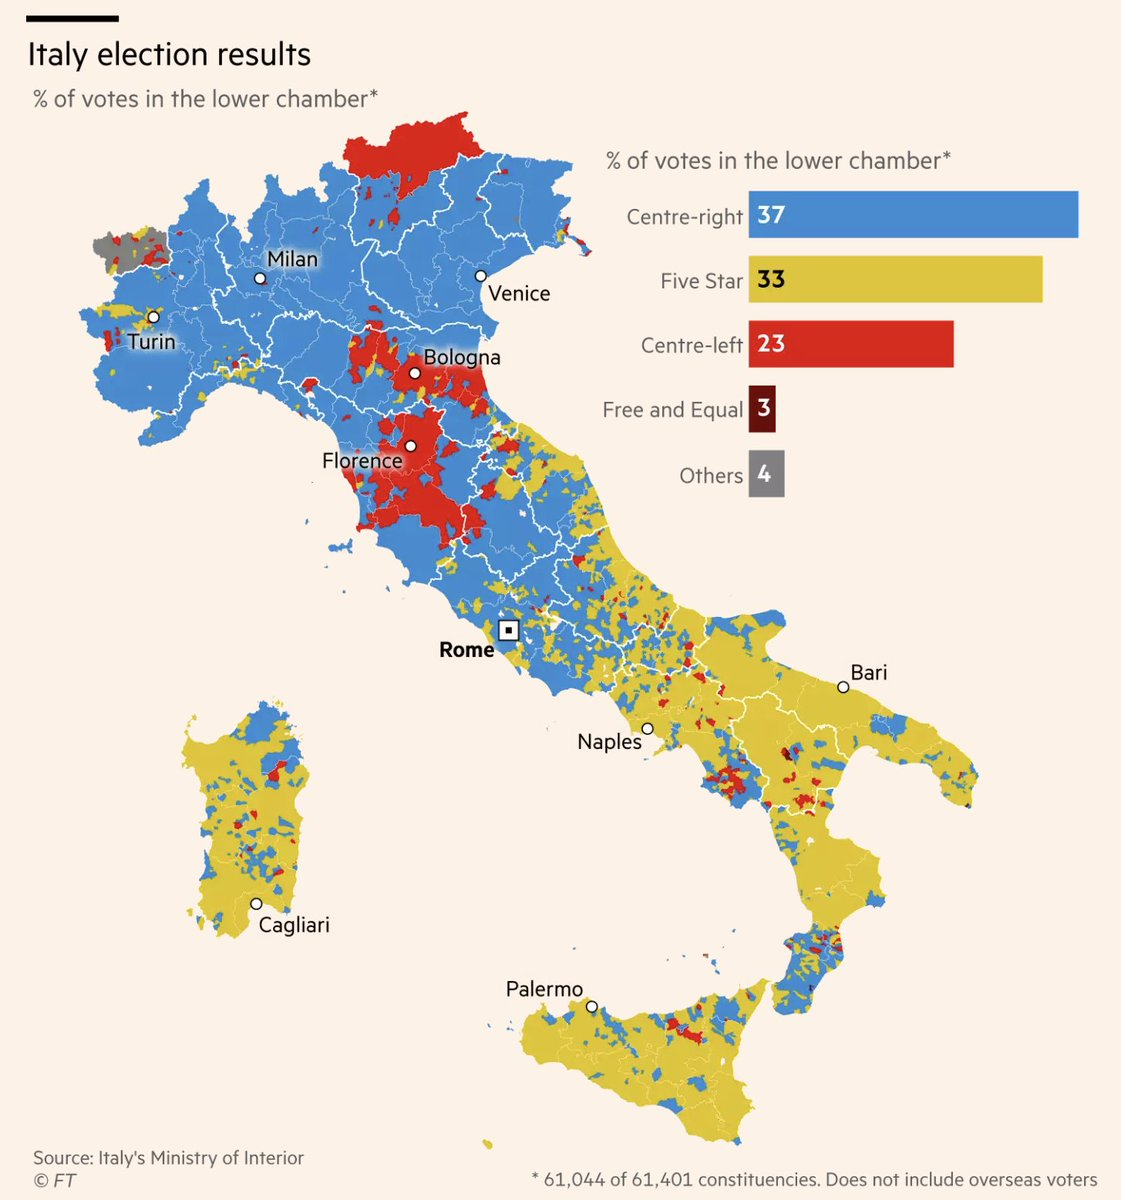 Adrian shtuni on twitter italy anti establishment populist map of election results reveals a deeply divided country httpsftcontente6a89252 1ffa 11e8 a895 1ba1f72c2c11 gumiabroncs Gallery